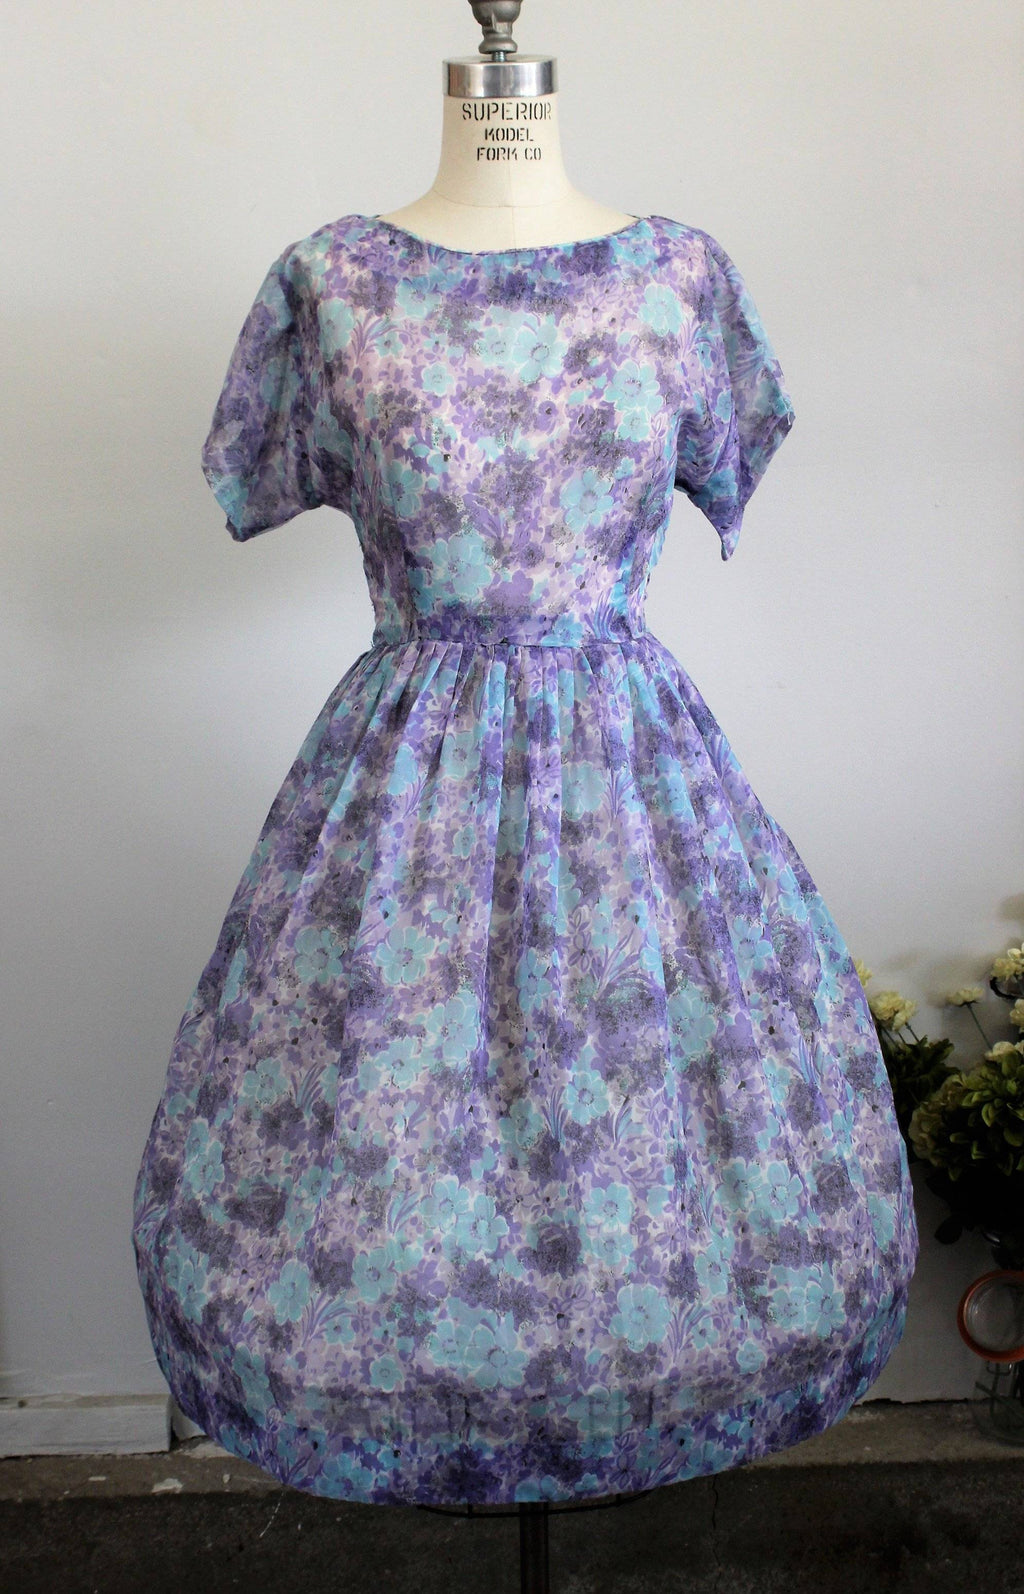 Vintage 1940s Blue and Purple Floral Print New Look Dress, Sheer Nylon